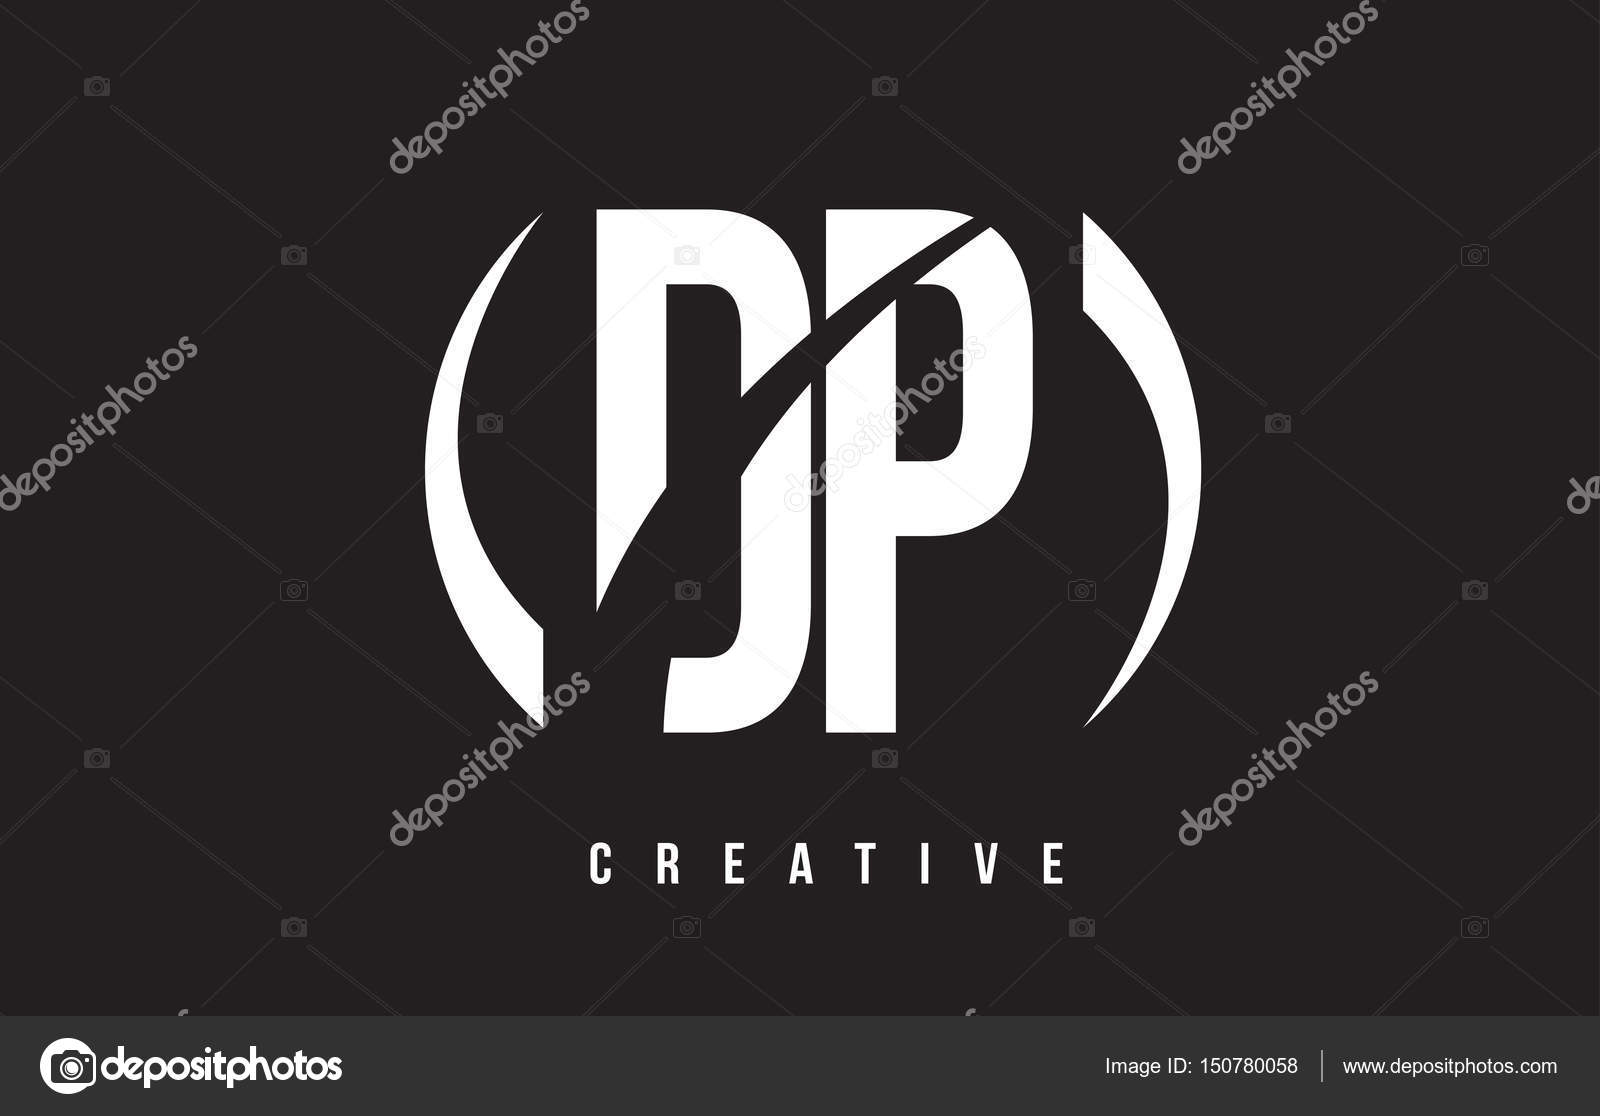 dp d p white letter logo design with black background. — stock